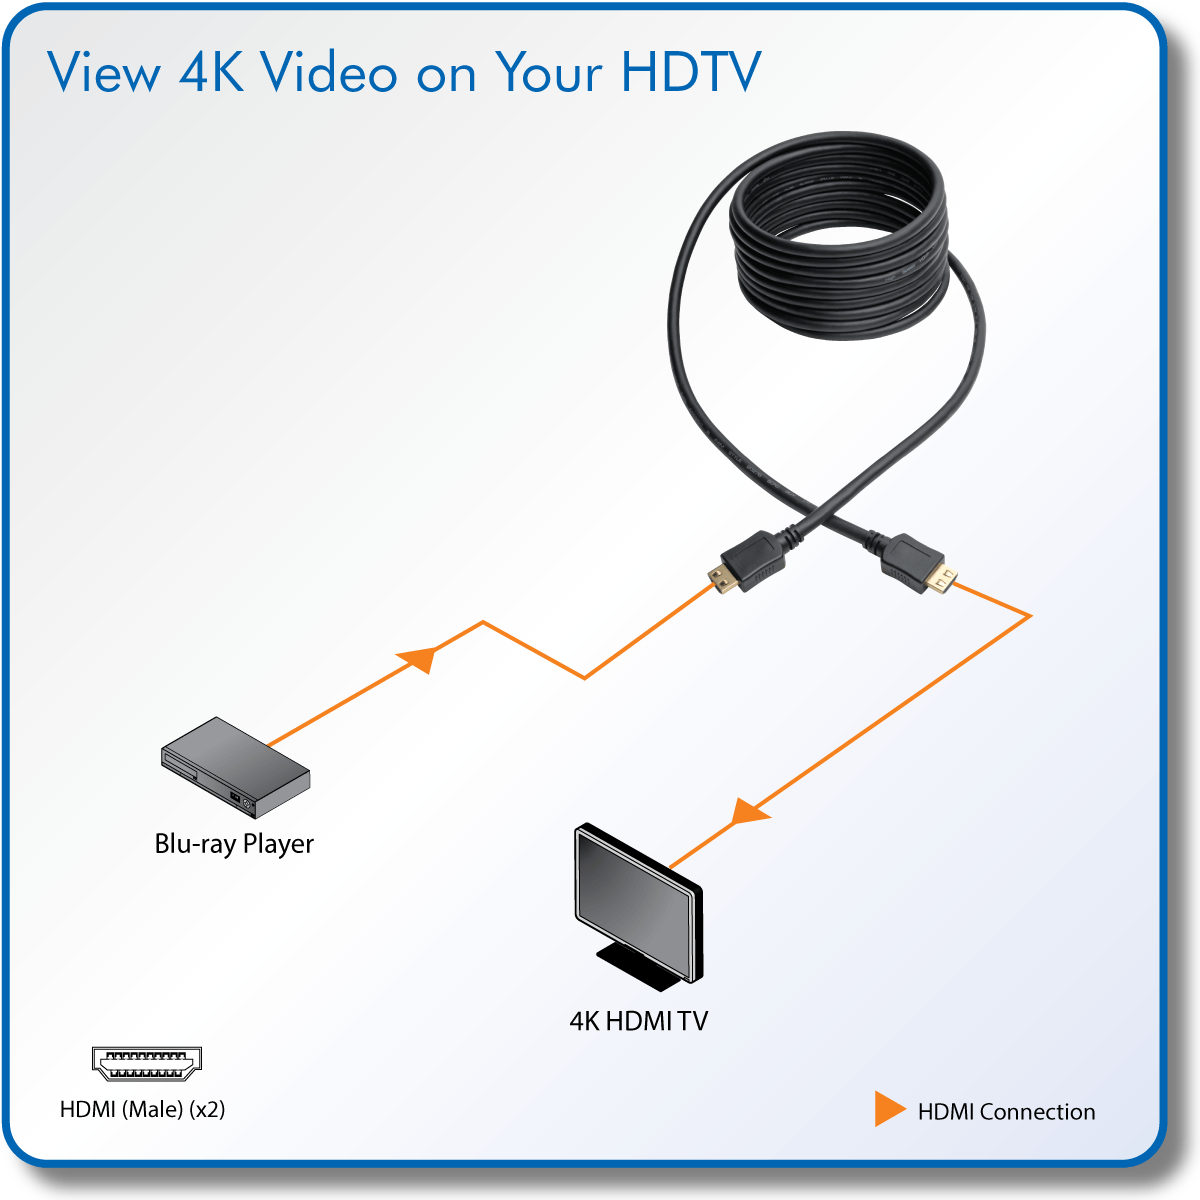 hight resolution of firmly connect an hdmi source and display for uninterrupted viewing of 4k video